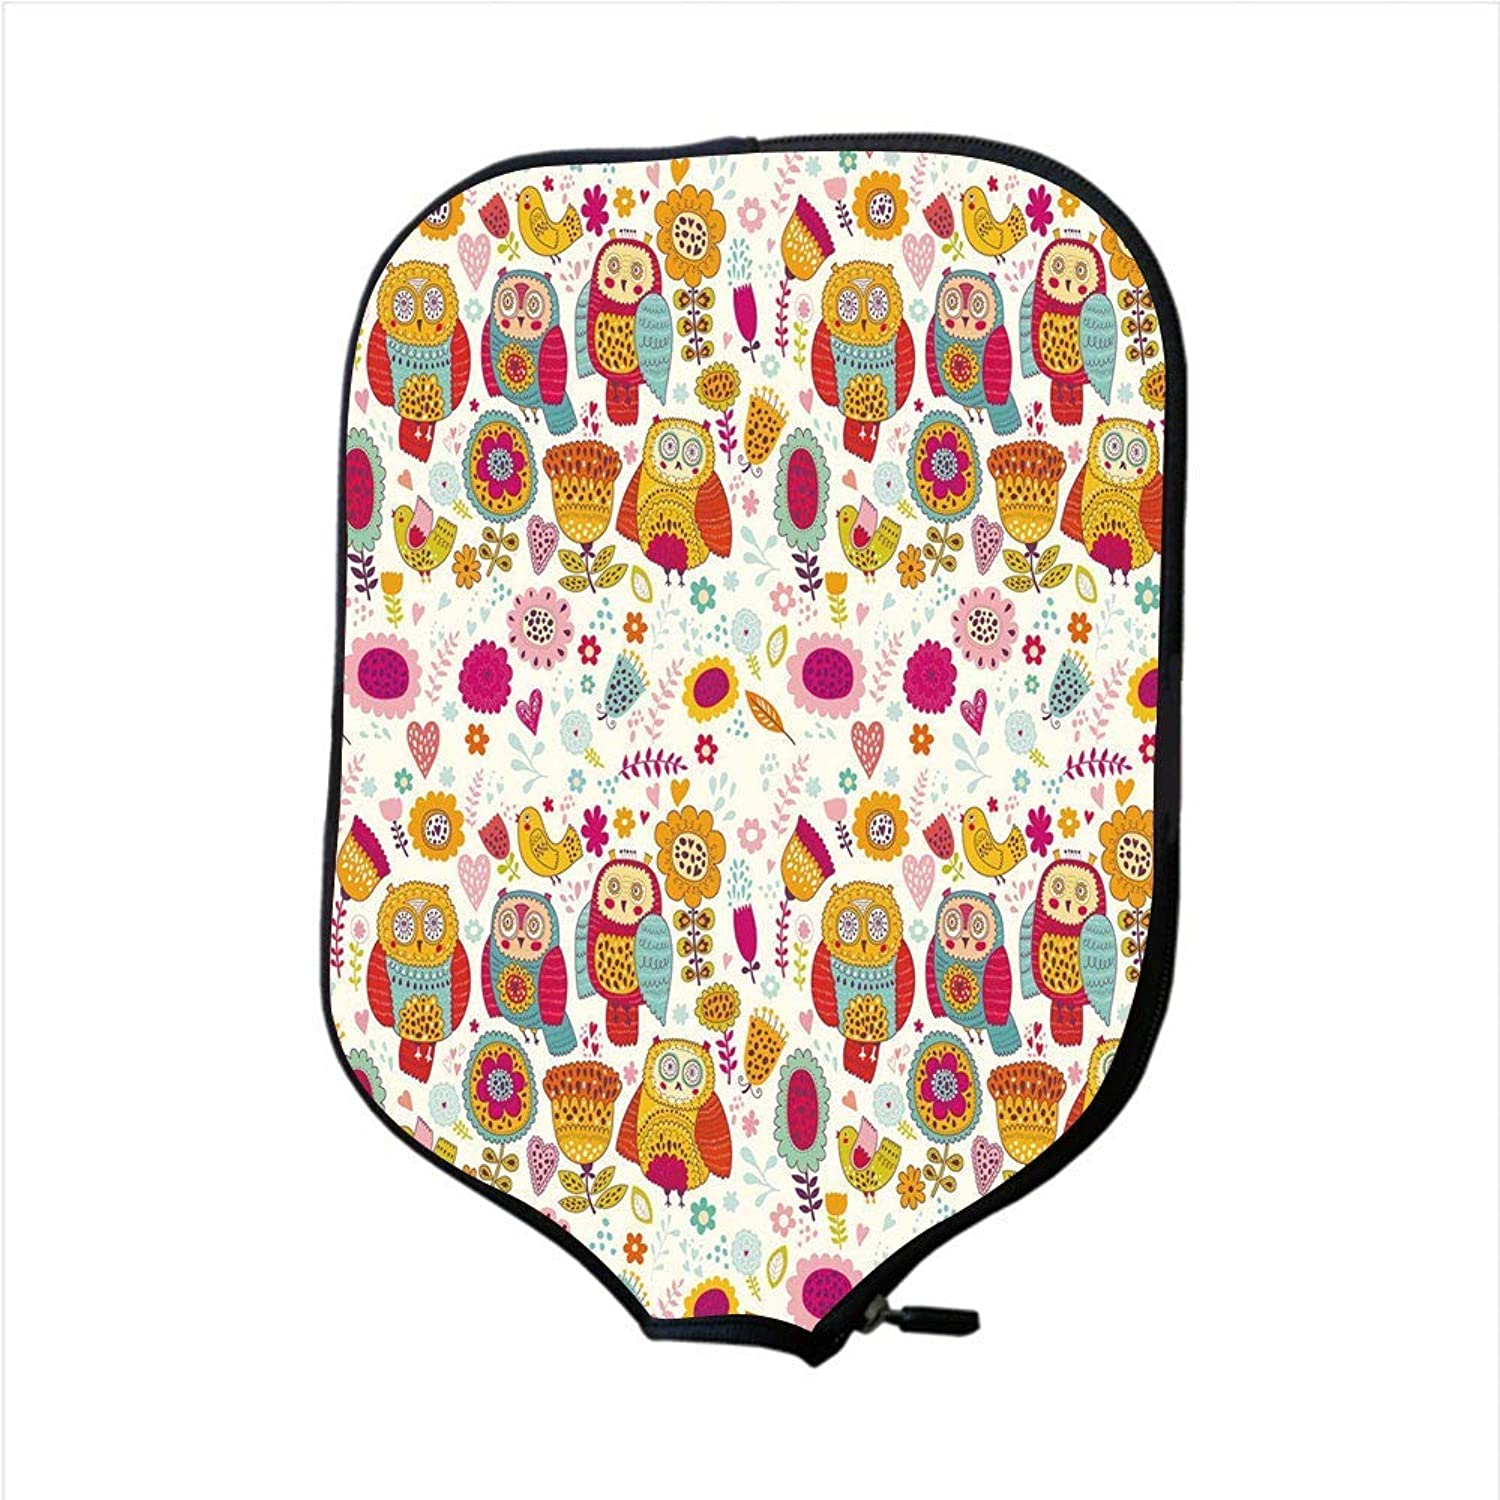 Fine Neoprene Pickleball Paddle Racket Cover Case,Owl,Sixties Inspired color Scheme Psychedelic Abstract Birds and Flowers Multicolord Image Decorative,Multicolor,Fit for Most Rackets